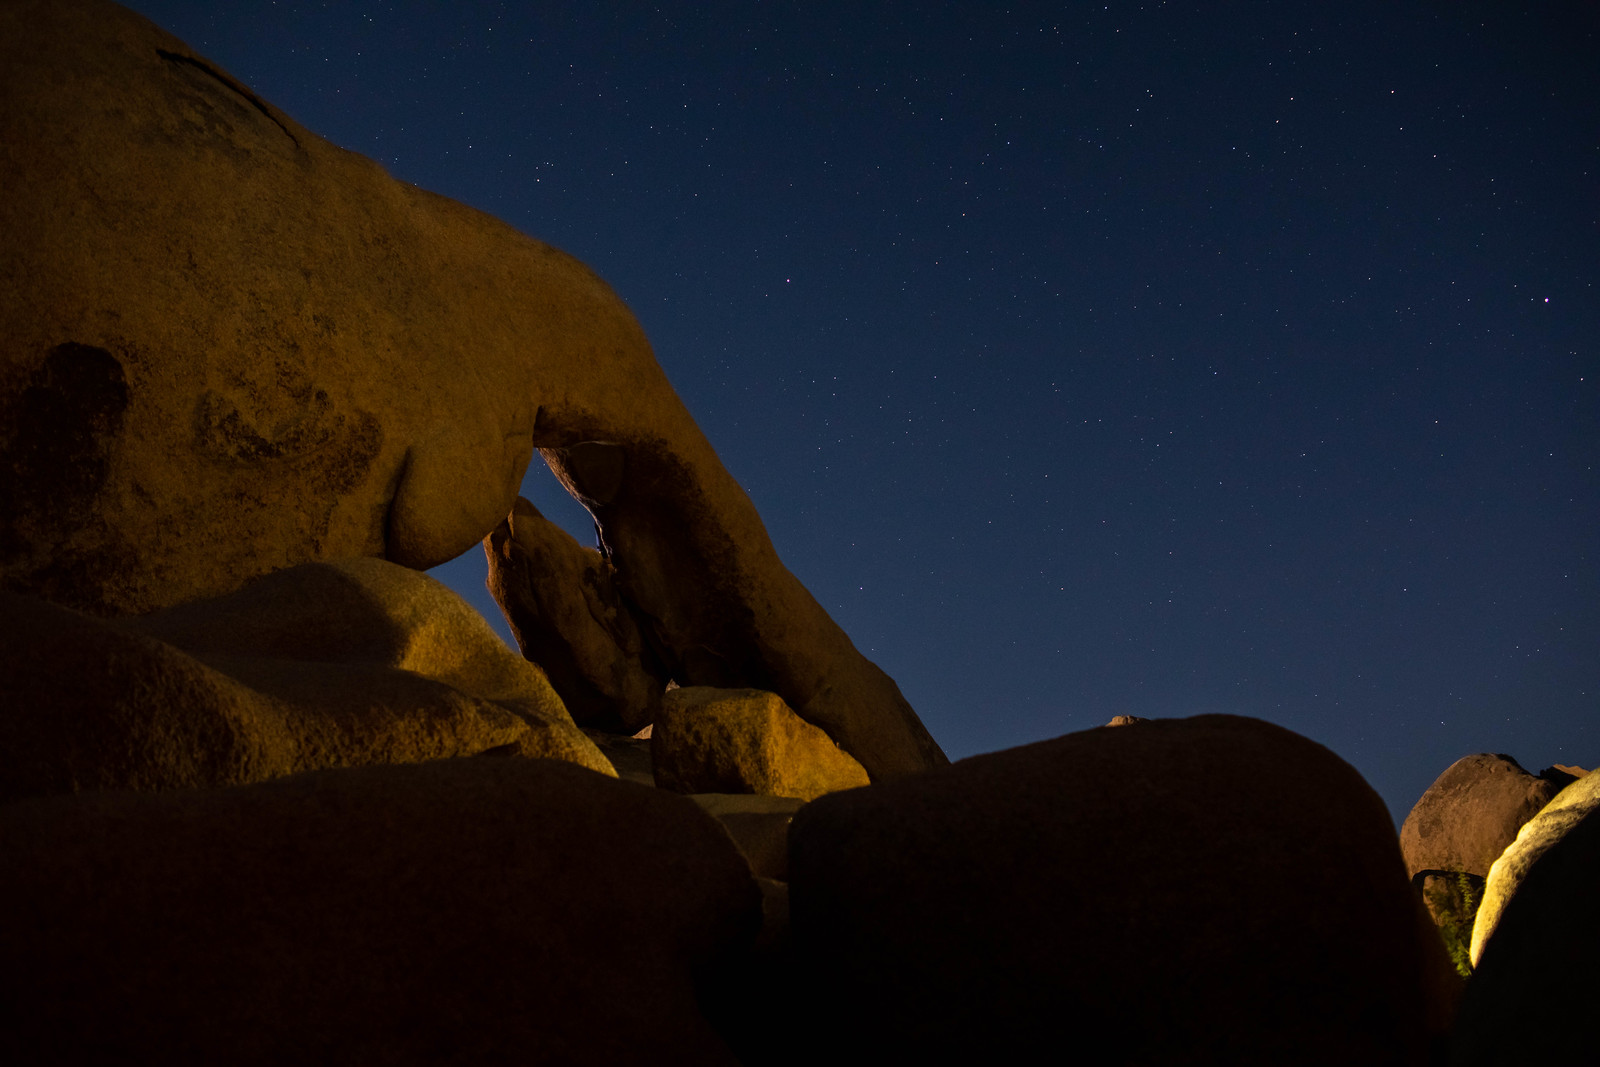 11.23. Joshua Tree National Park